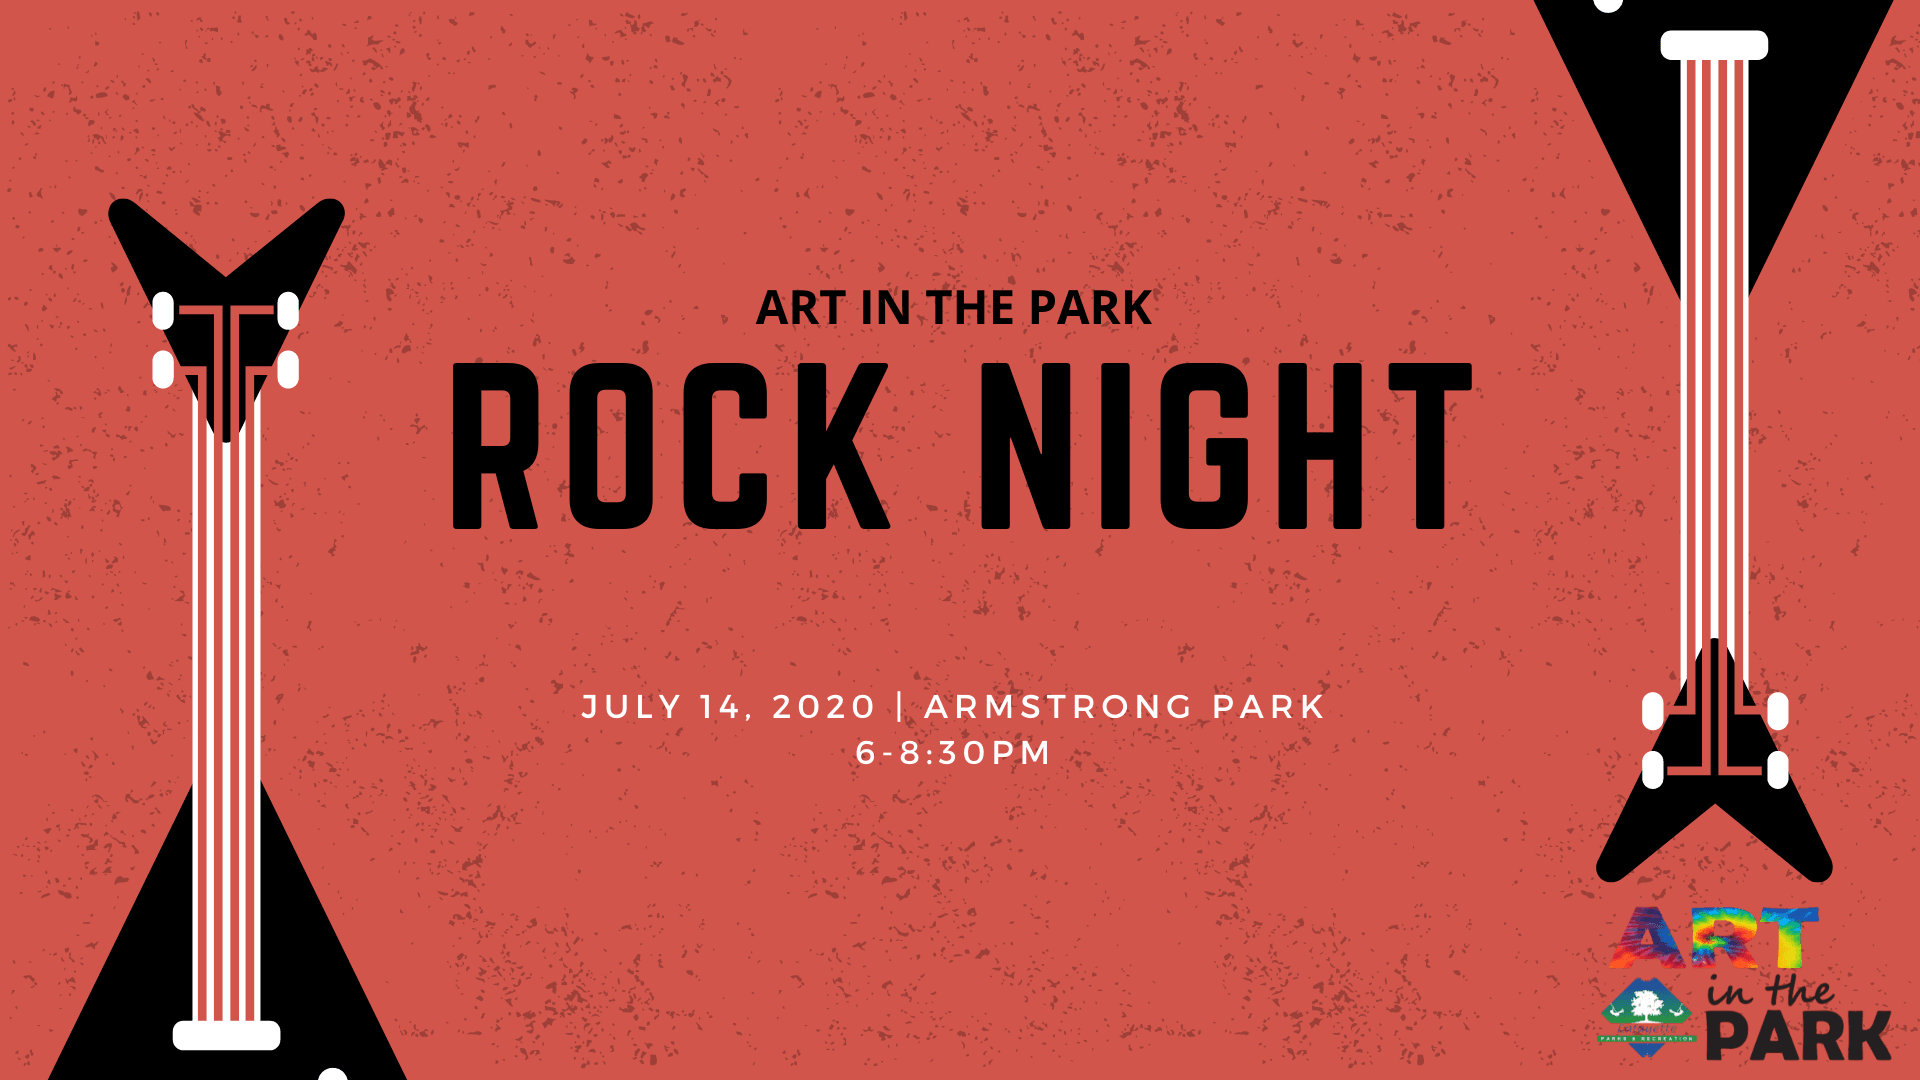 Art in the Park Rock Night